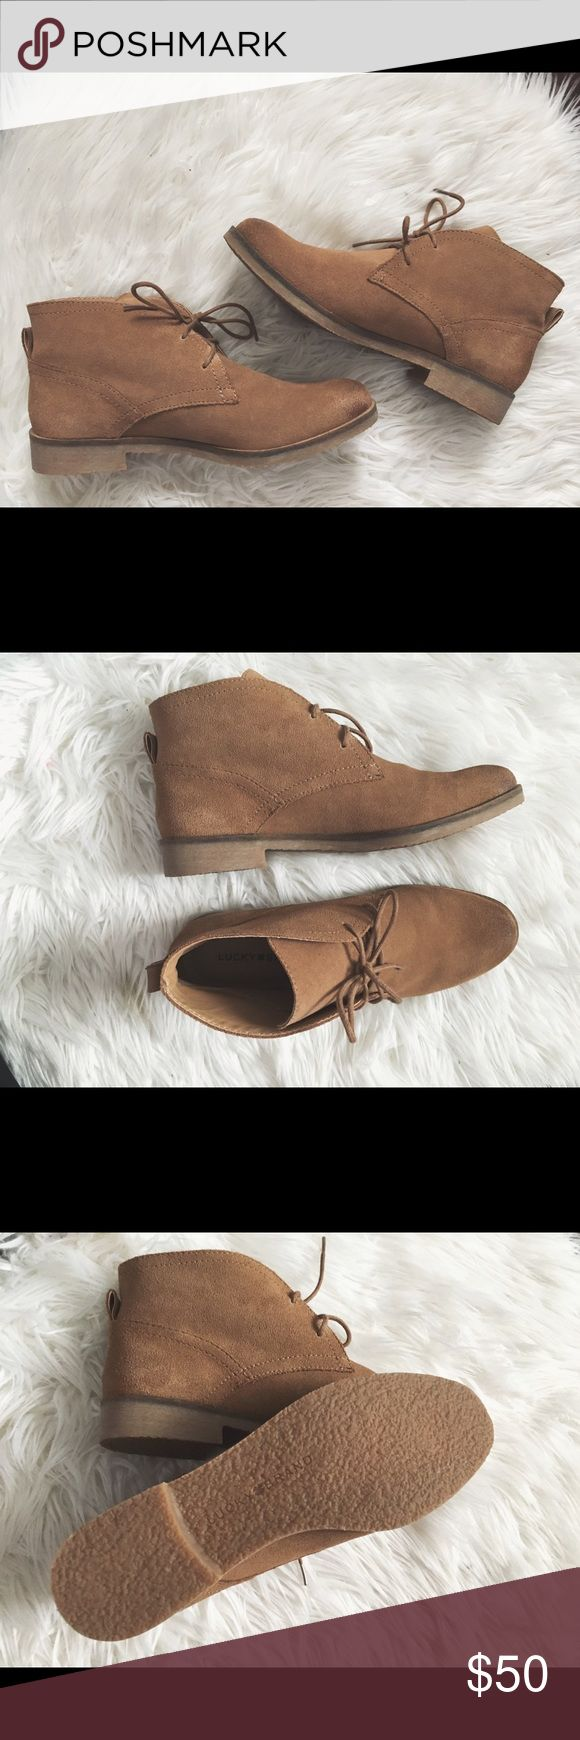 Lucky Brand lace-up booties BRAND NEW!! Never been worn, but comes without box. Beautiful brown/tan color. Very lightweight!! Bundle shipping included. Lucky Brand Shoes Ankle Boots & Booties